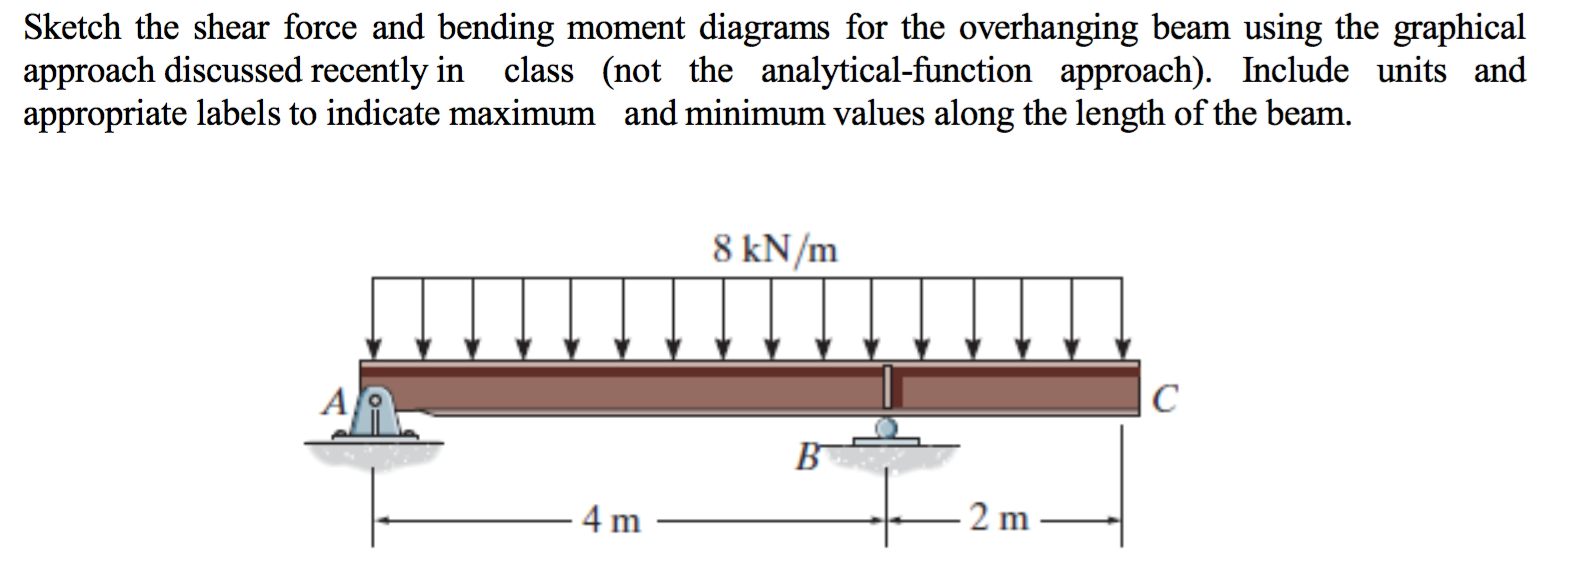 Sketch The Shear Force And Bending Moment Diagrams Diagram Question For Overhanging Beam Using Graphical A